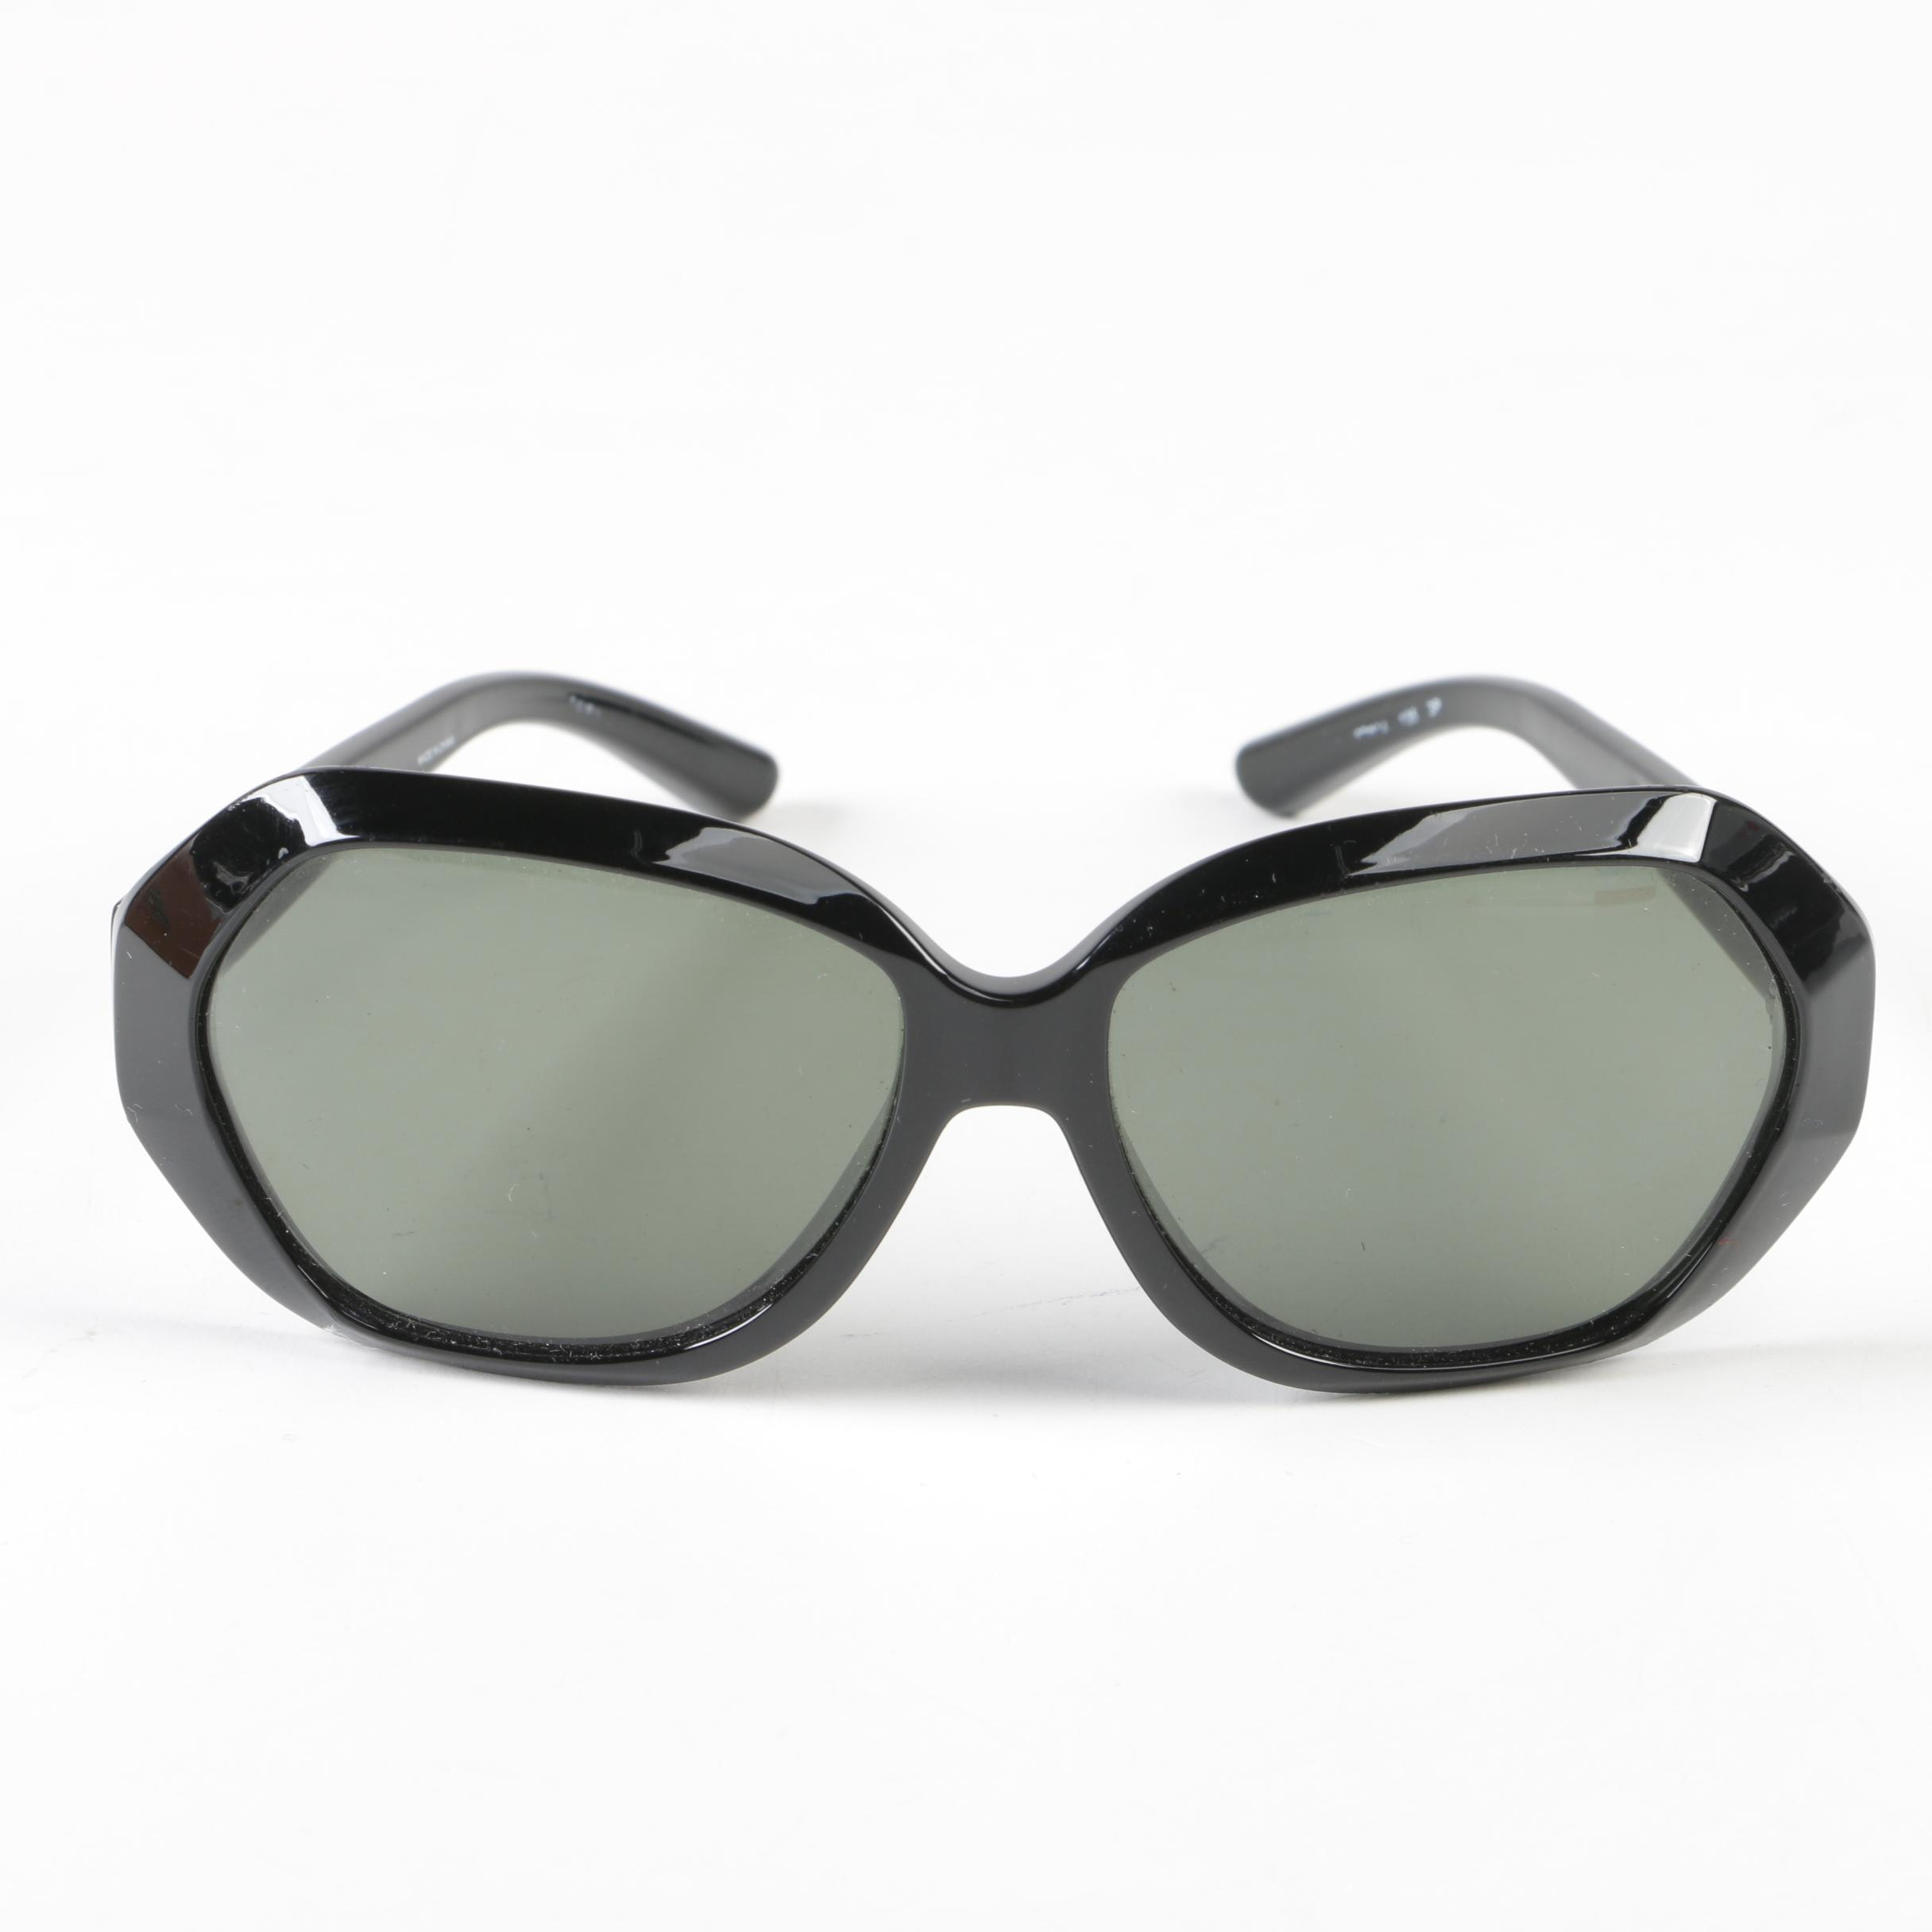 Tory Burch Polarized Black Modified Cat Eye Sunglasses with Case